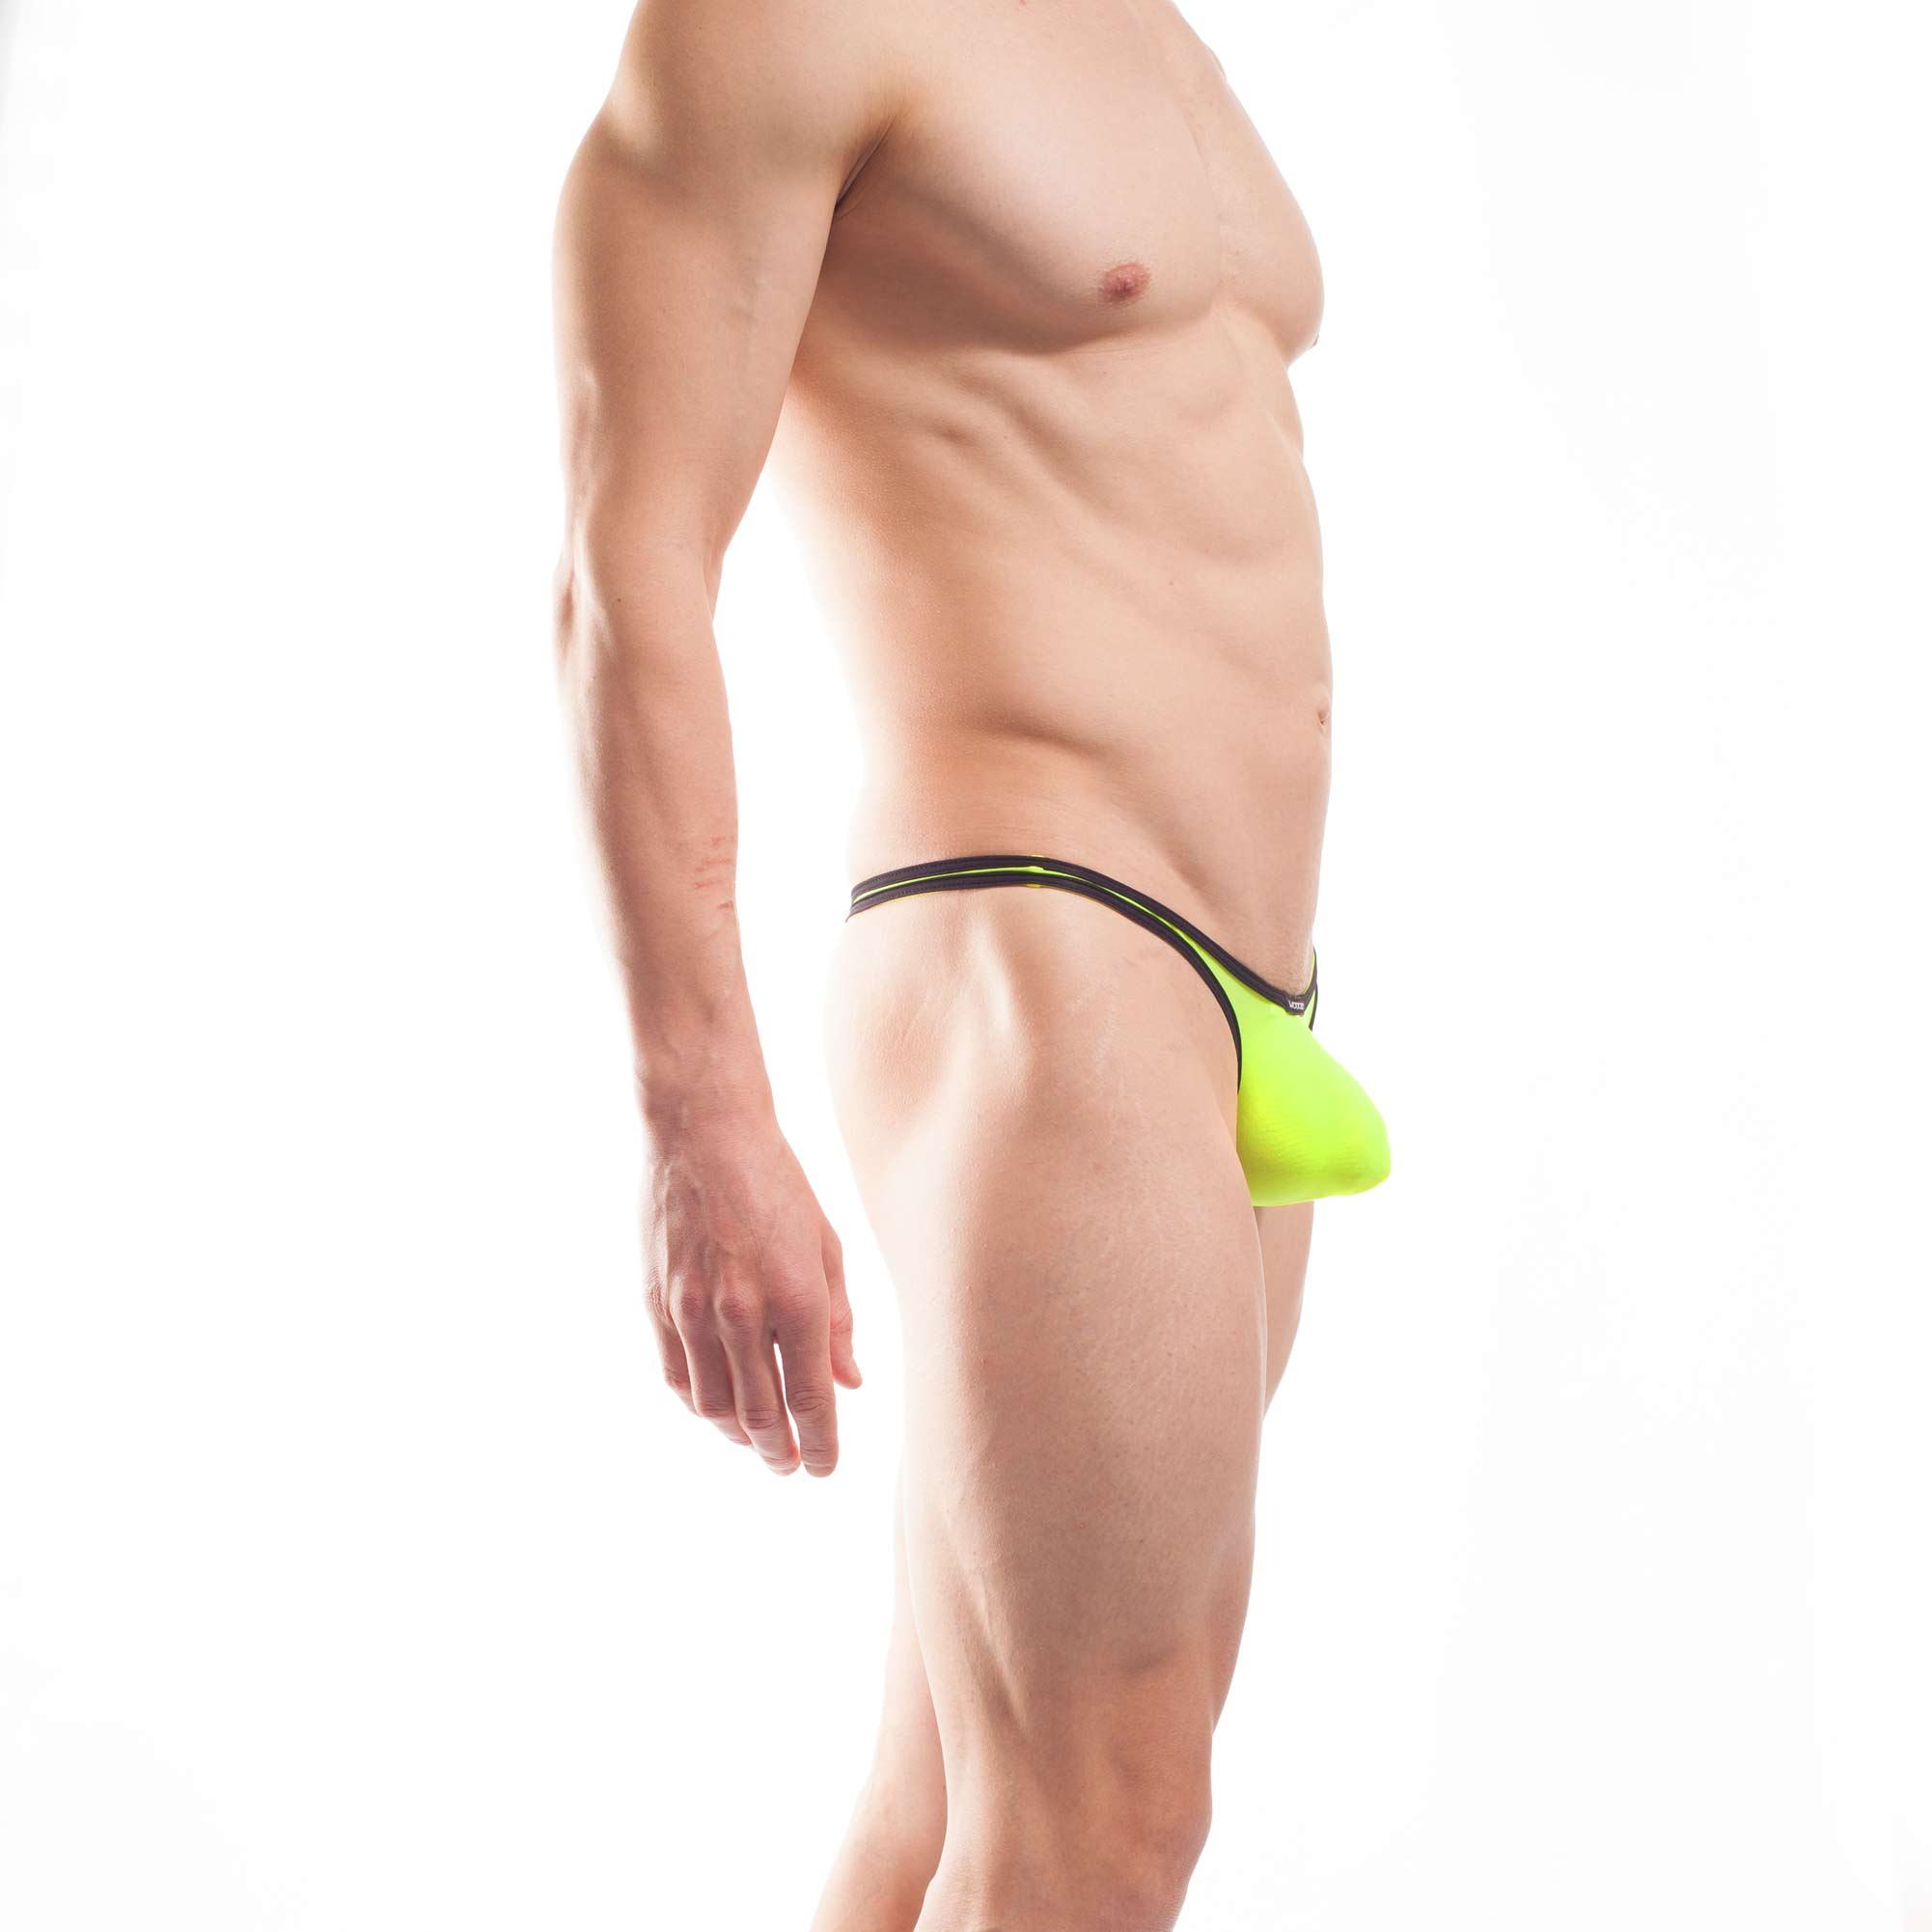 BEUN STRIPE PUSH UP MINI STRING, String, Tube, knappe Badehose, swim trunks, kontrast Ränder, schwarze Börtchen, neon gelb